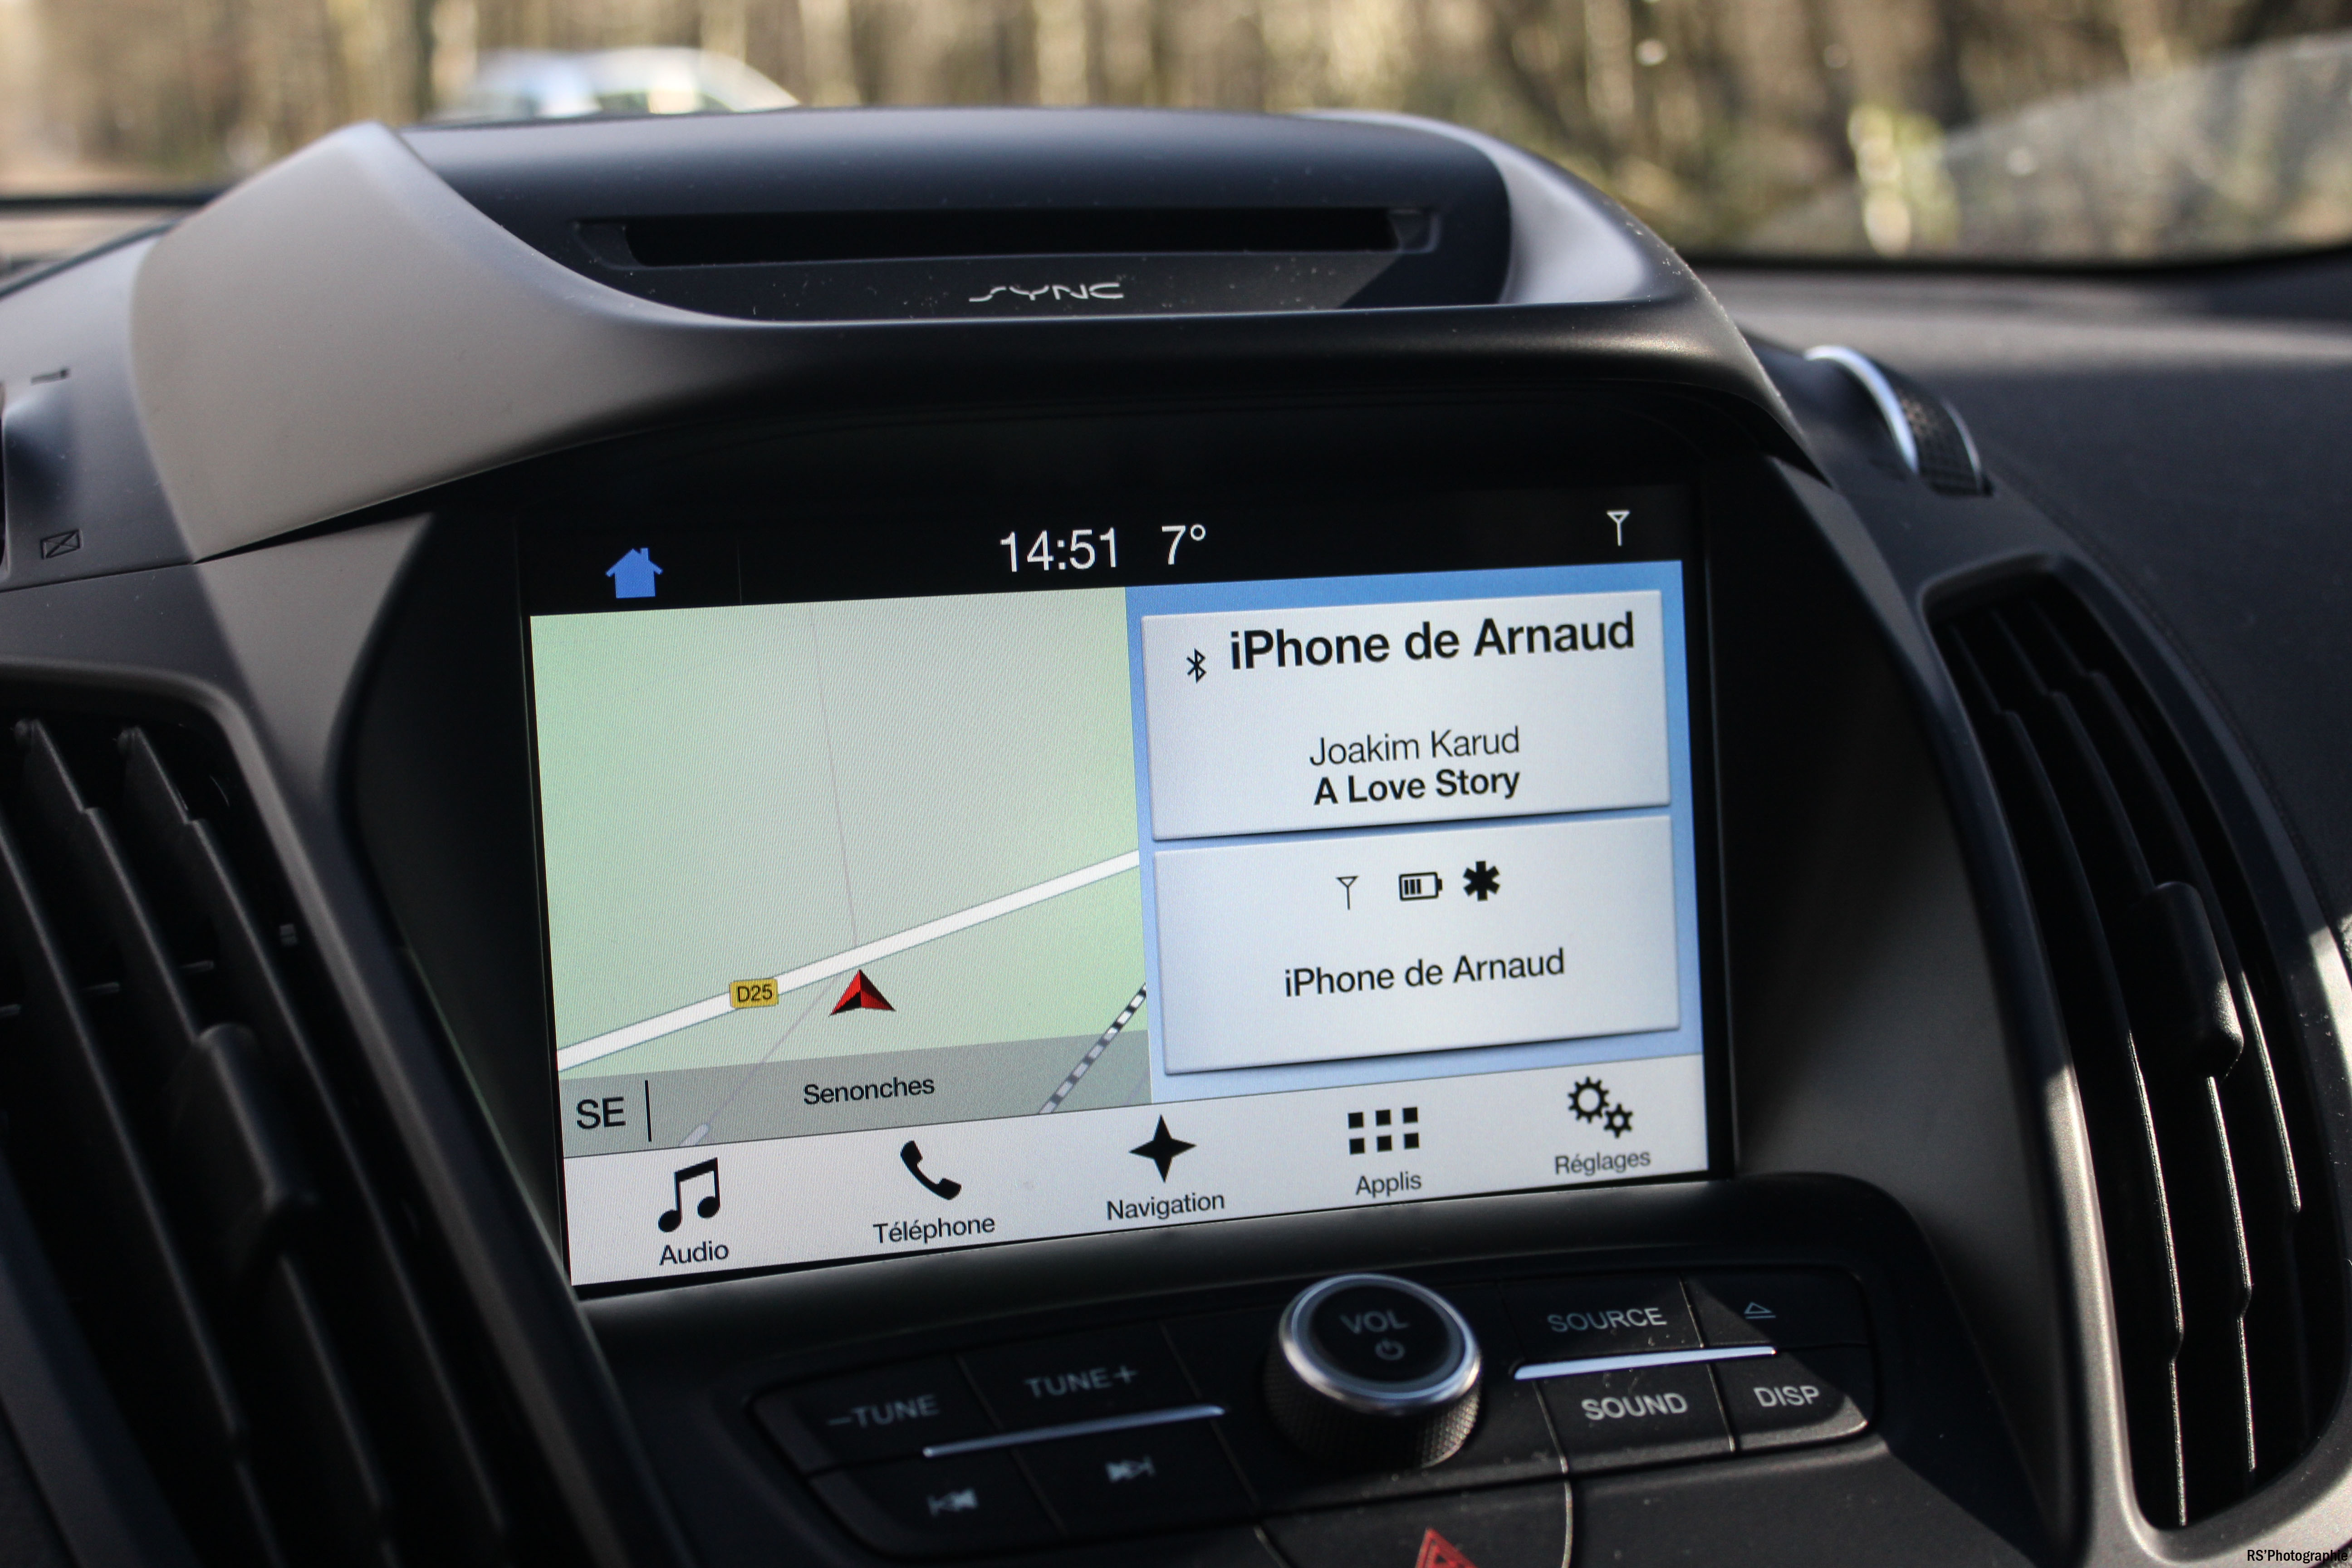 FordKuga26-ford-kuga-150-ecran digital-digital screen-arnaud-demasier-rsphotographie